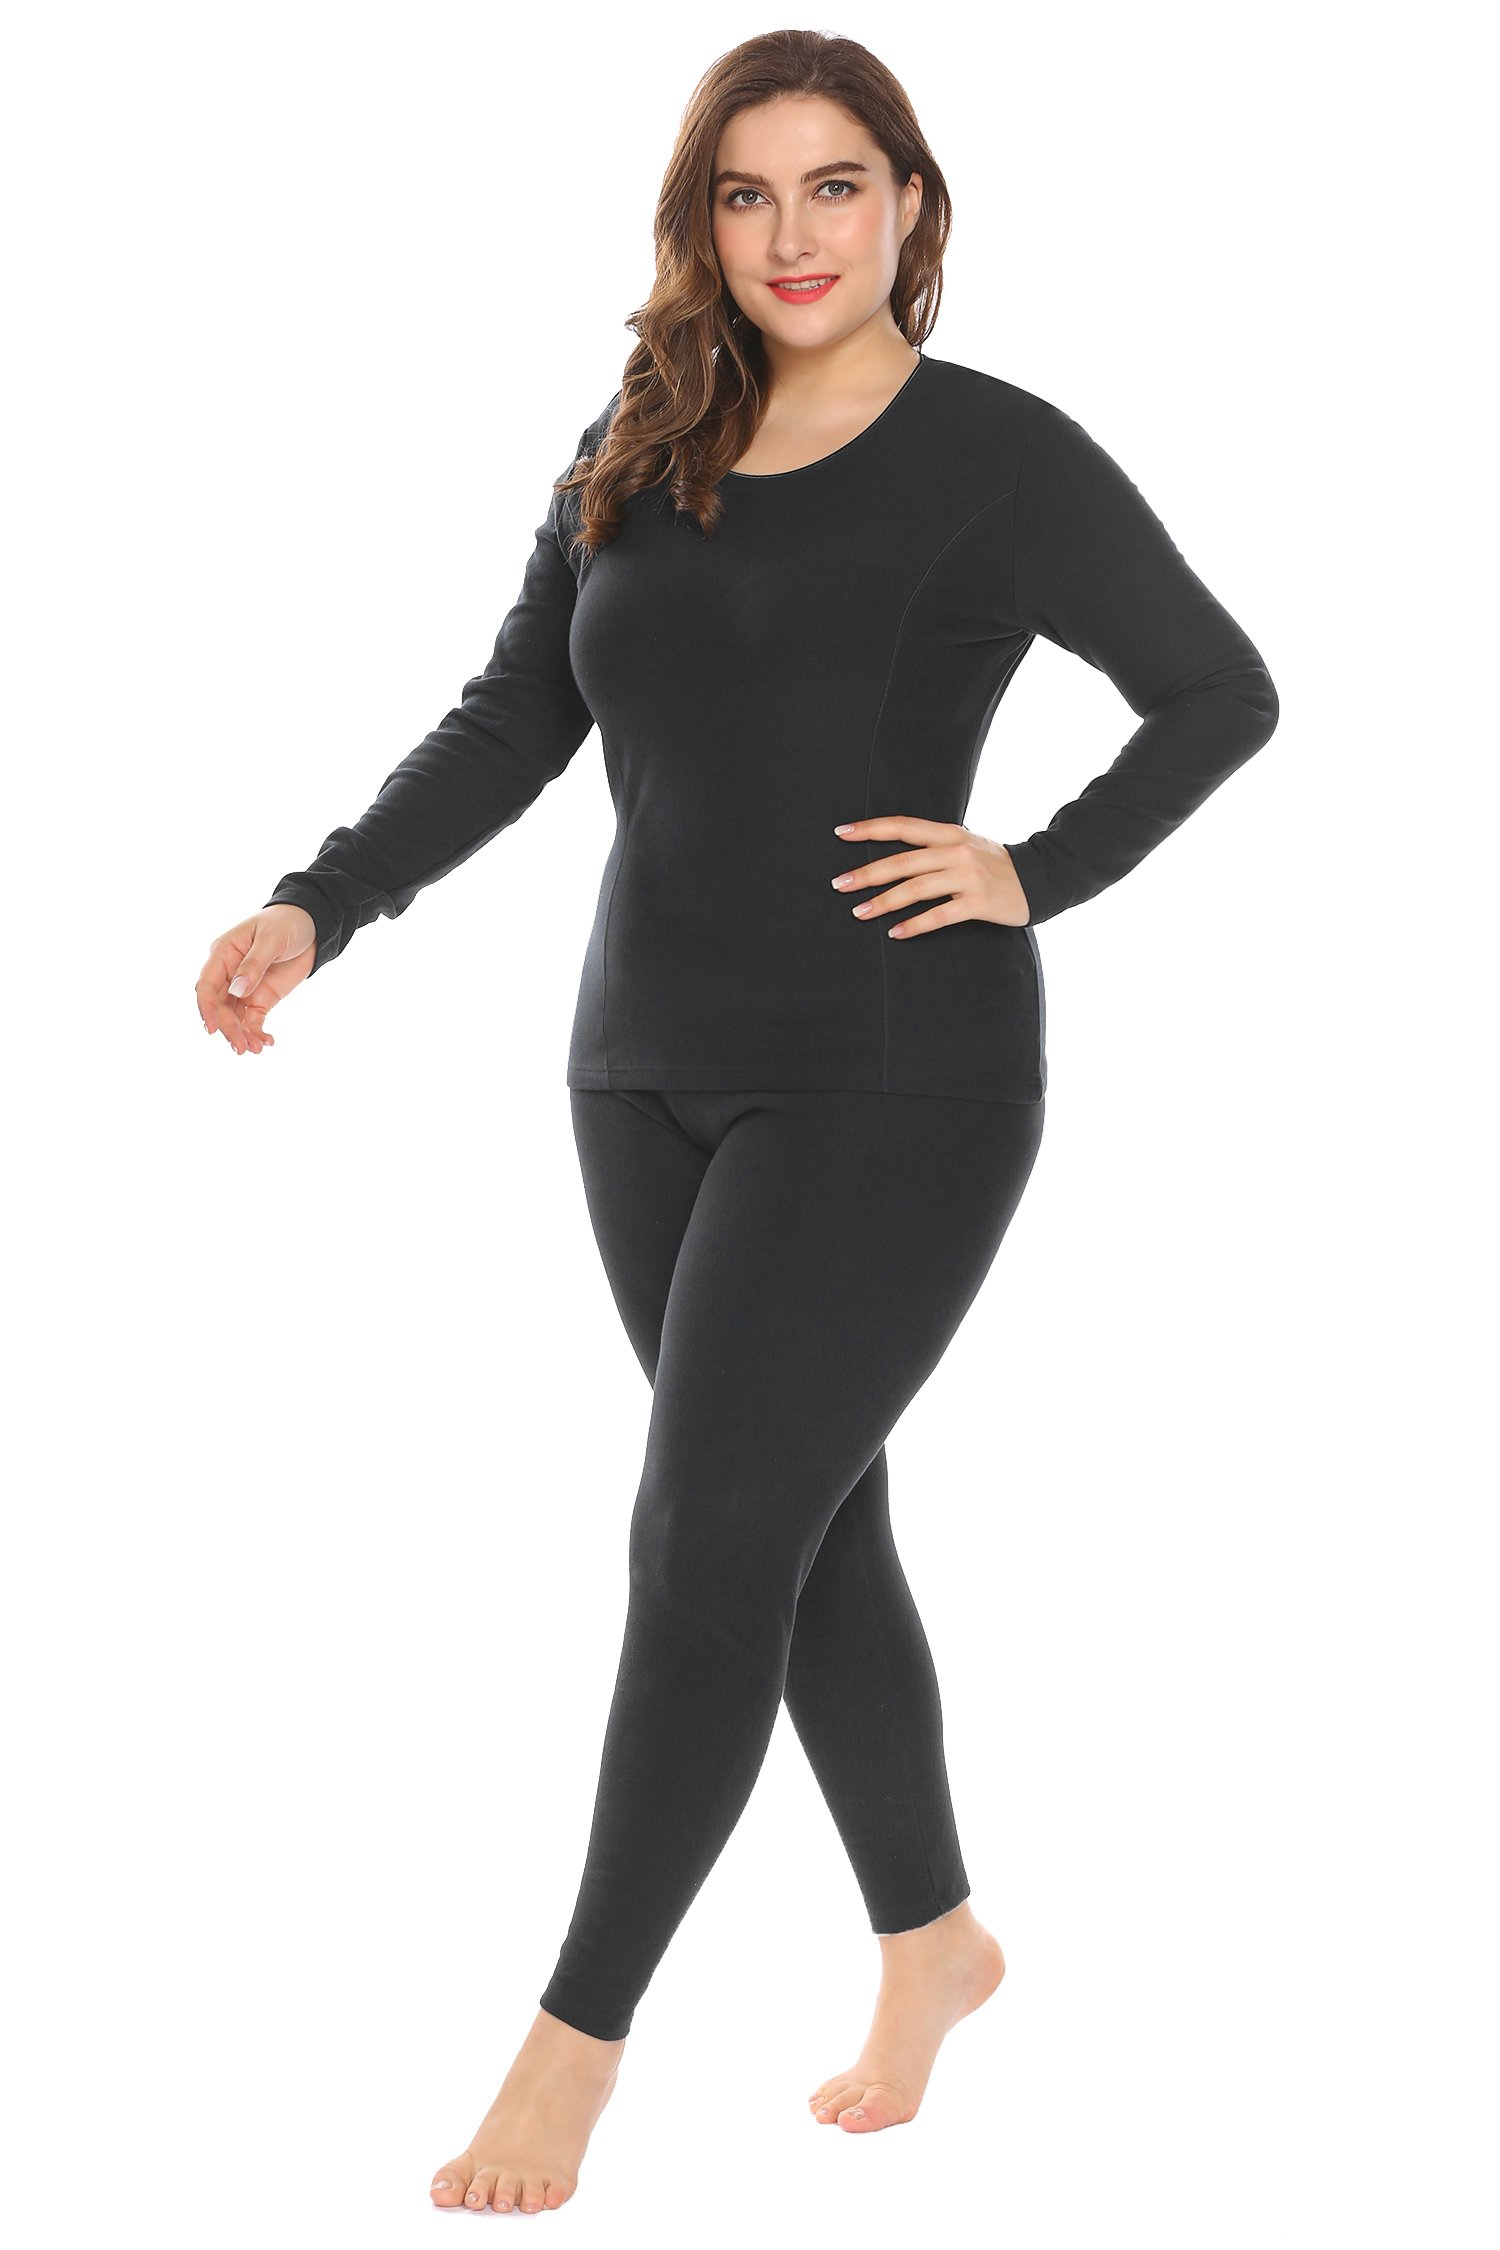 In'voland Women's Thermal Underwear Set Top & Bottom Fleece Lined,Black,16W/XL